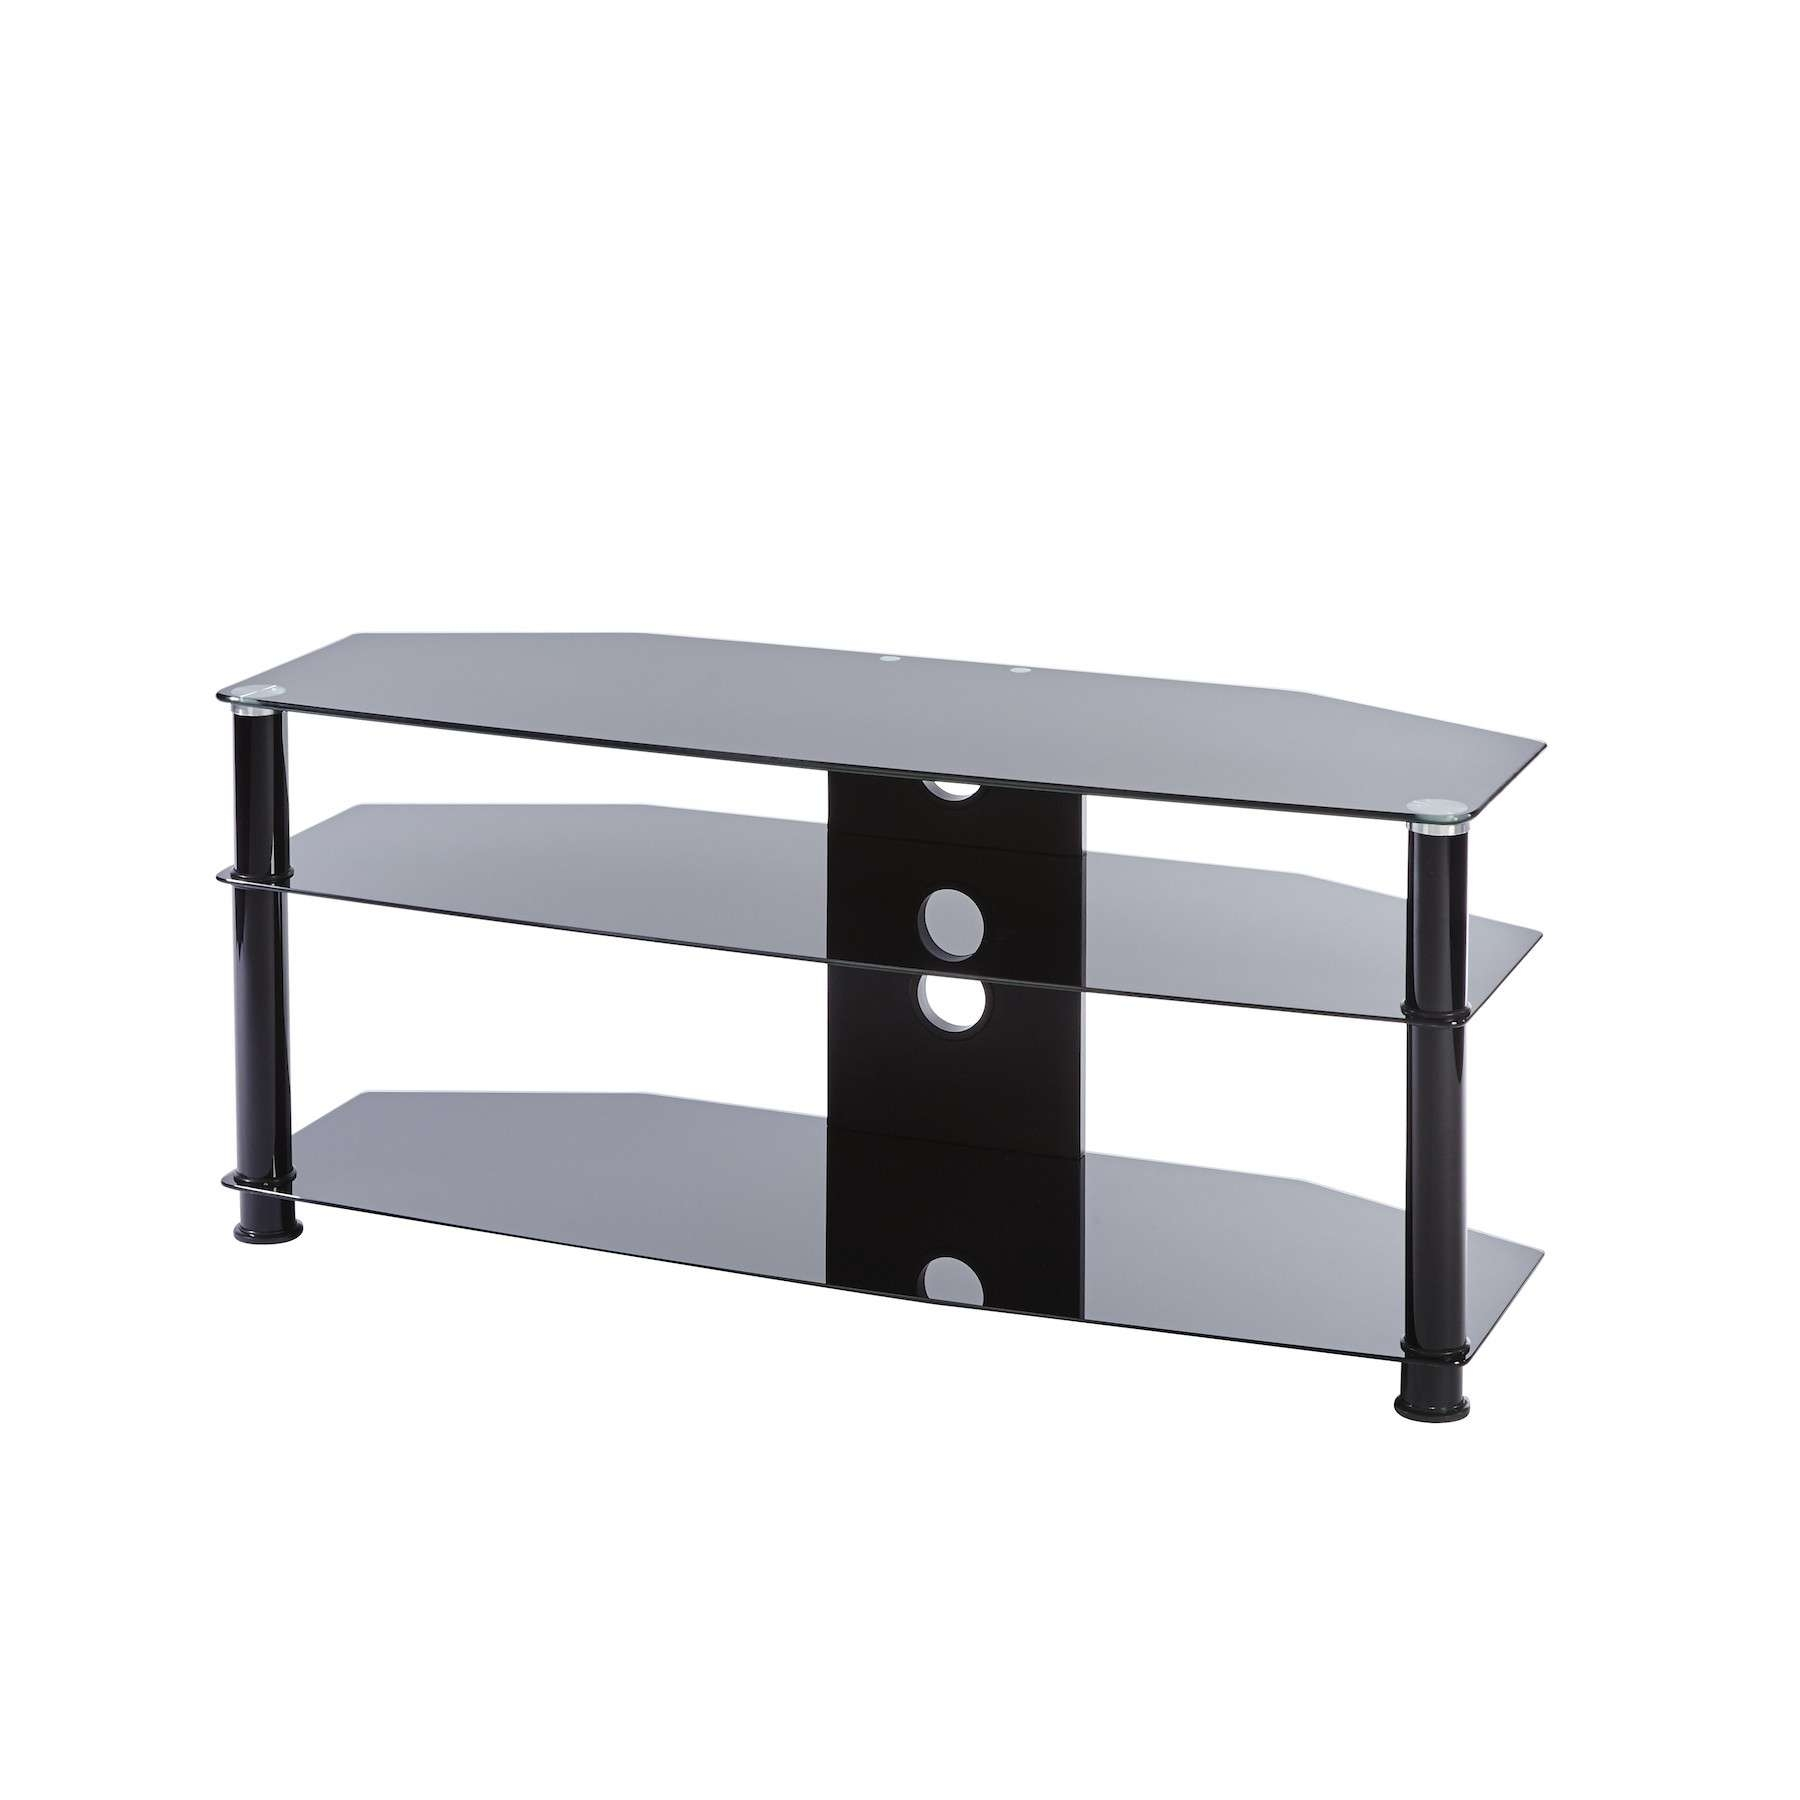 Black Glass 3 Shelf Tv Corner Stand Up To 47 Inch Tv | Mmt Db1000 With Black Glass Tv Stands (View 5 of 15)